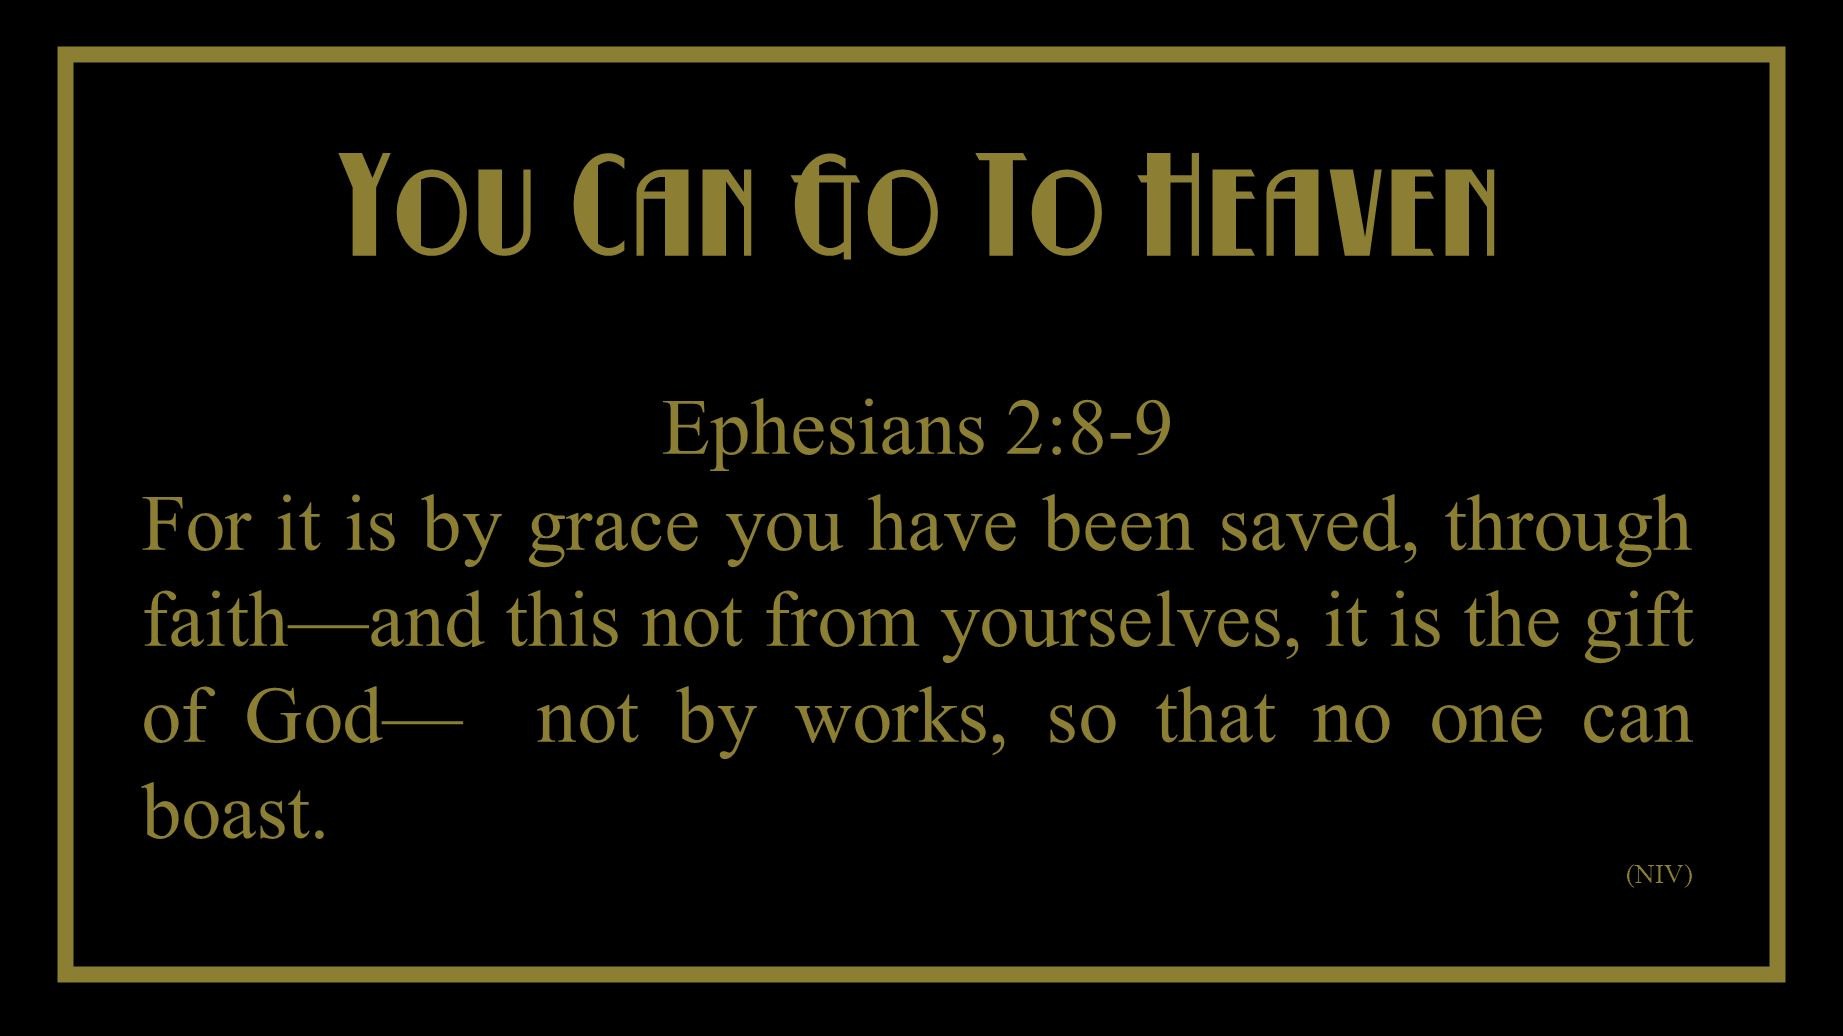 You Cant Take It With You You Can Go To Heaven Ephesians 2:8-9 For it is by grace you have been saved, through faithand this not from yourselves, it is the gift of God not by works, so that no one can boast.